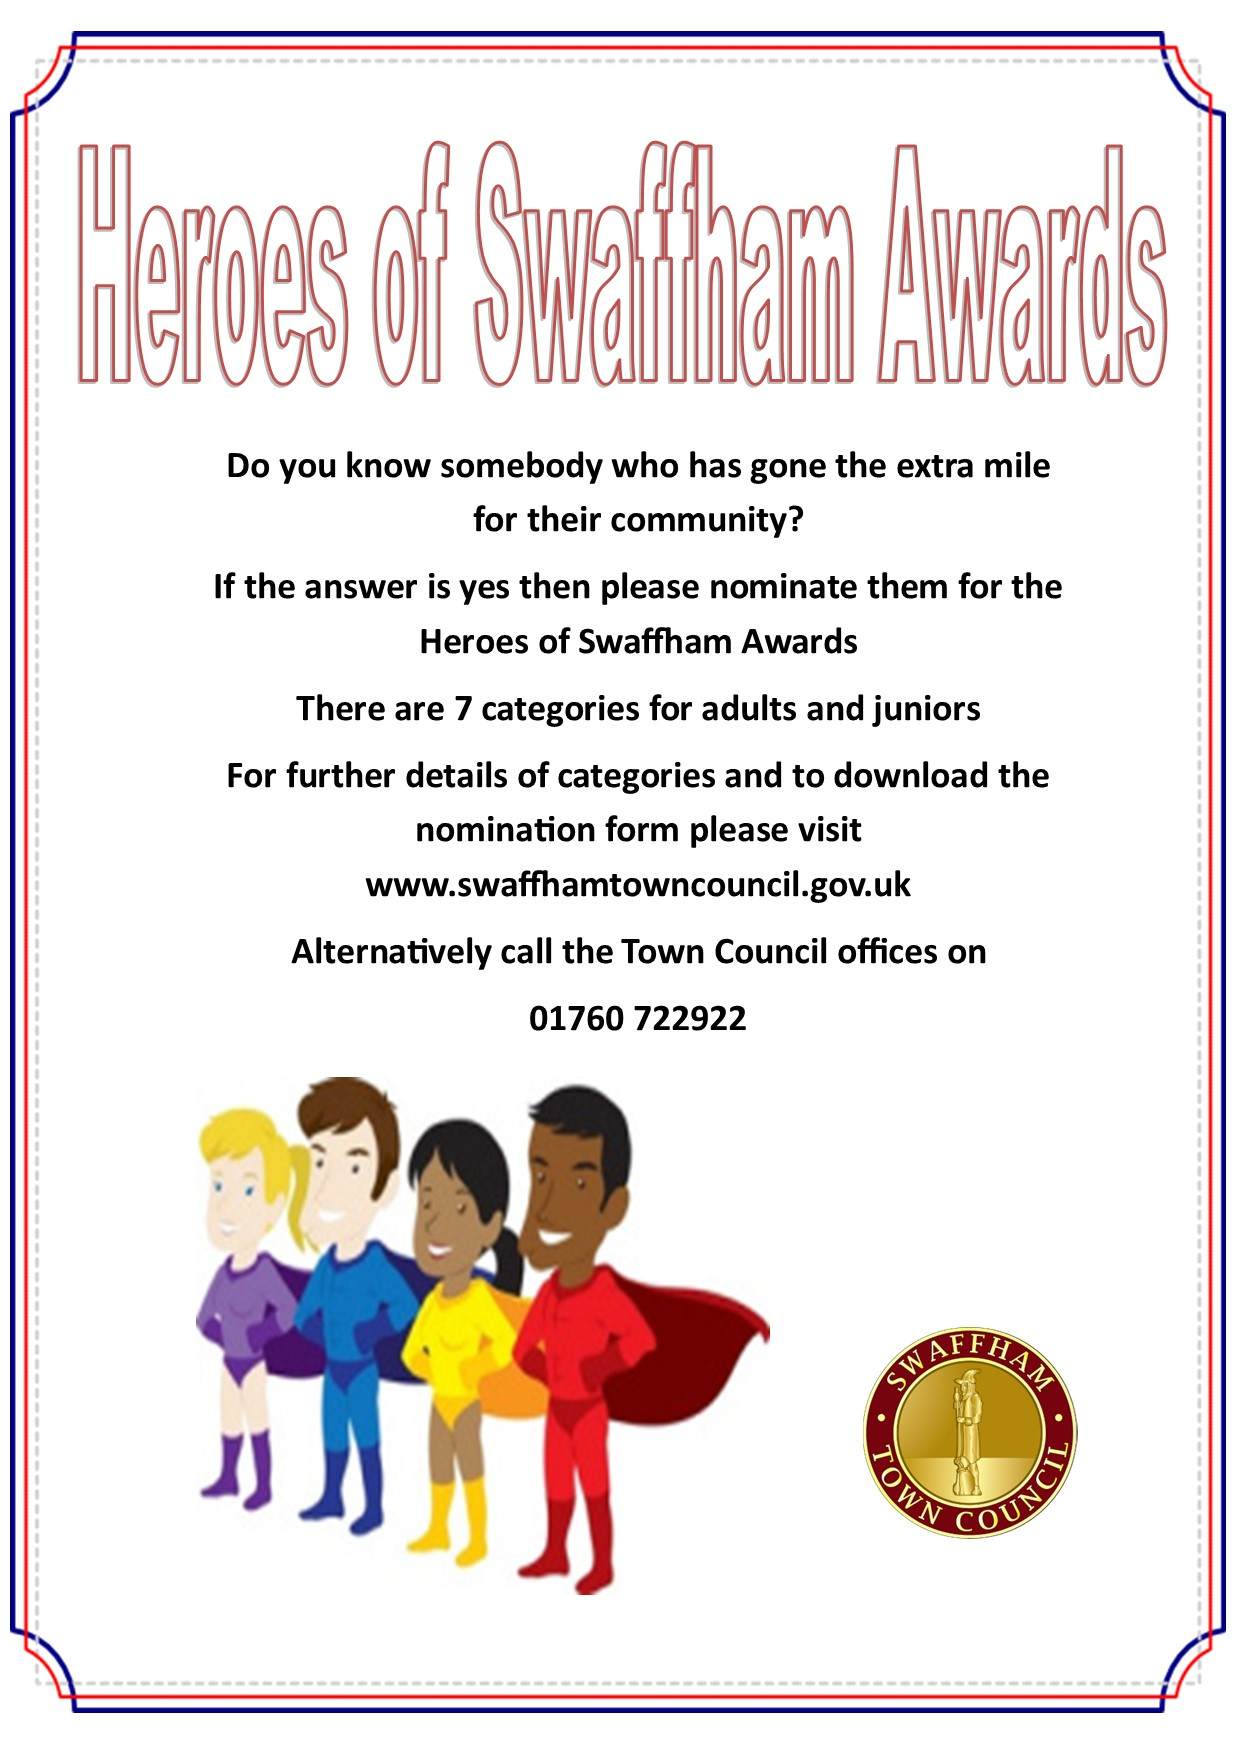 Swaffham Town Council Swaffham Heroes